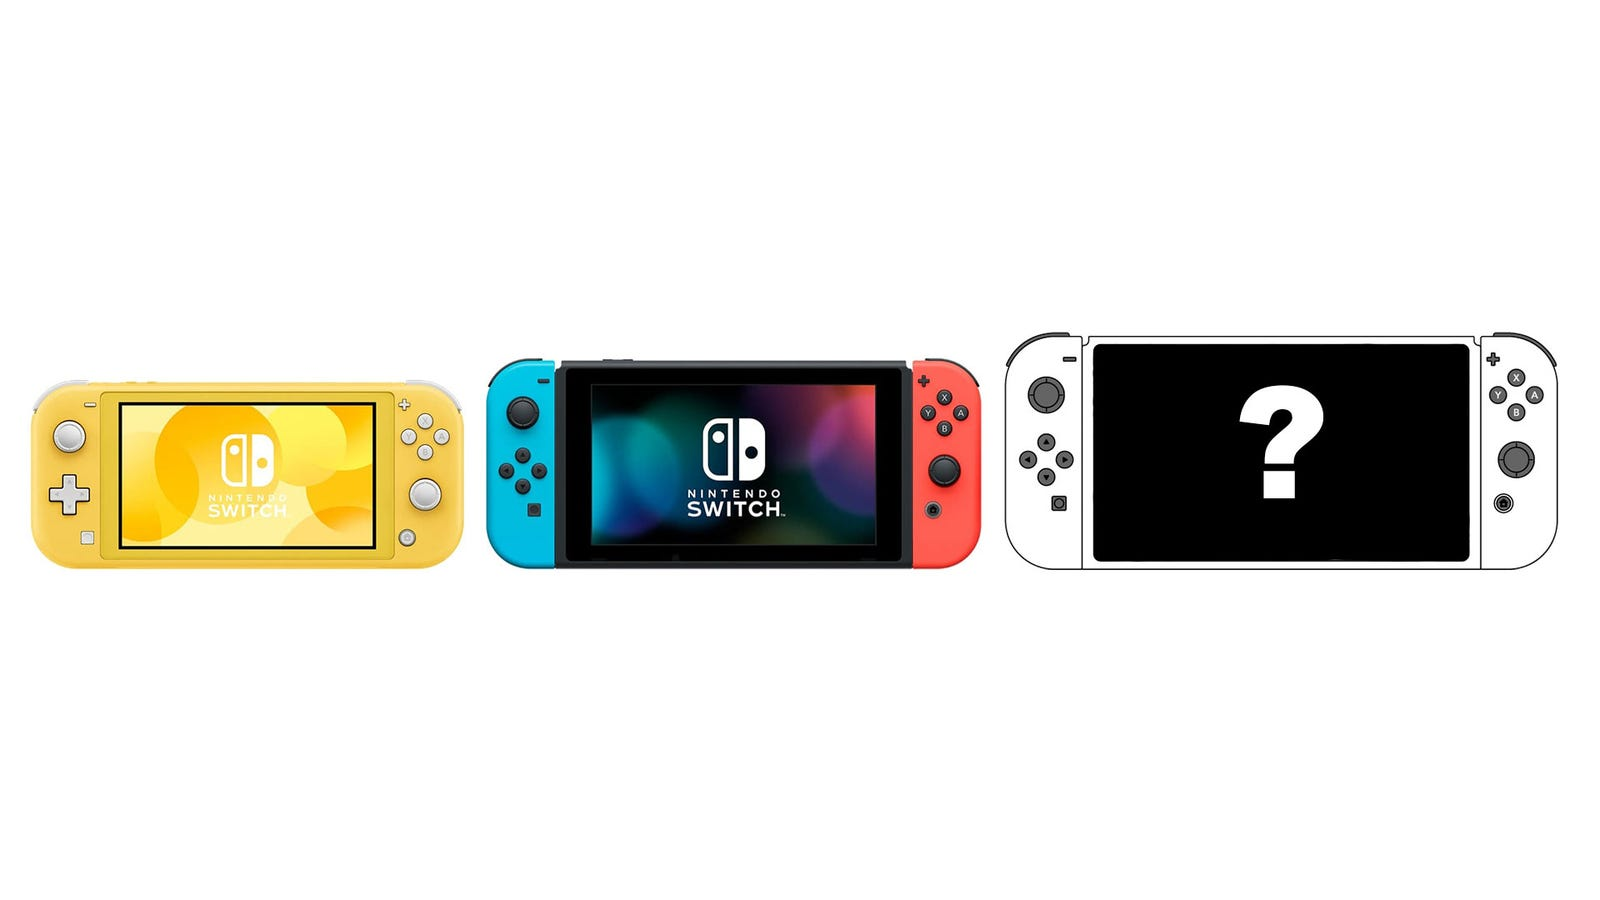 QnA VBage The Switch Lite Seems Nice, But What I Really Want Is a Switch Pro